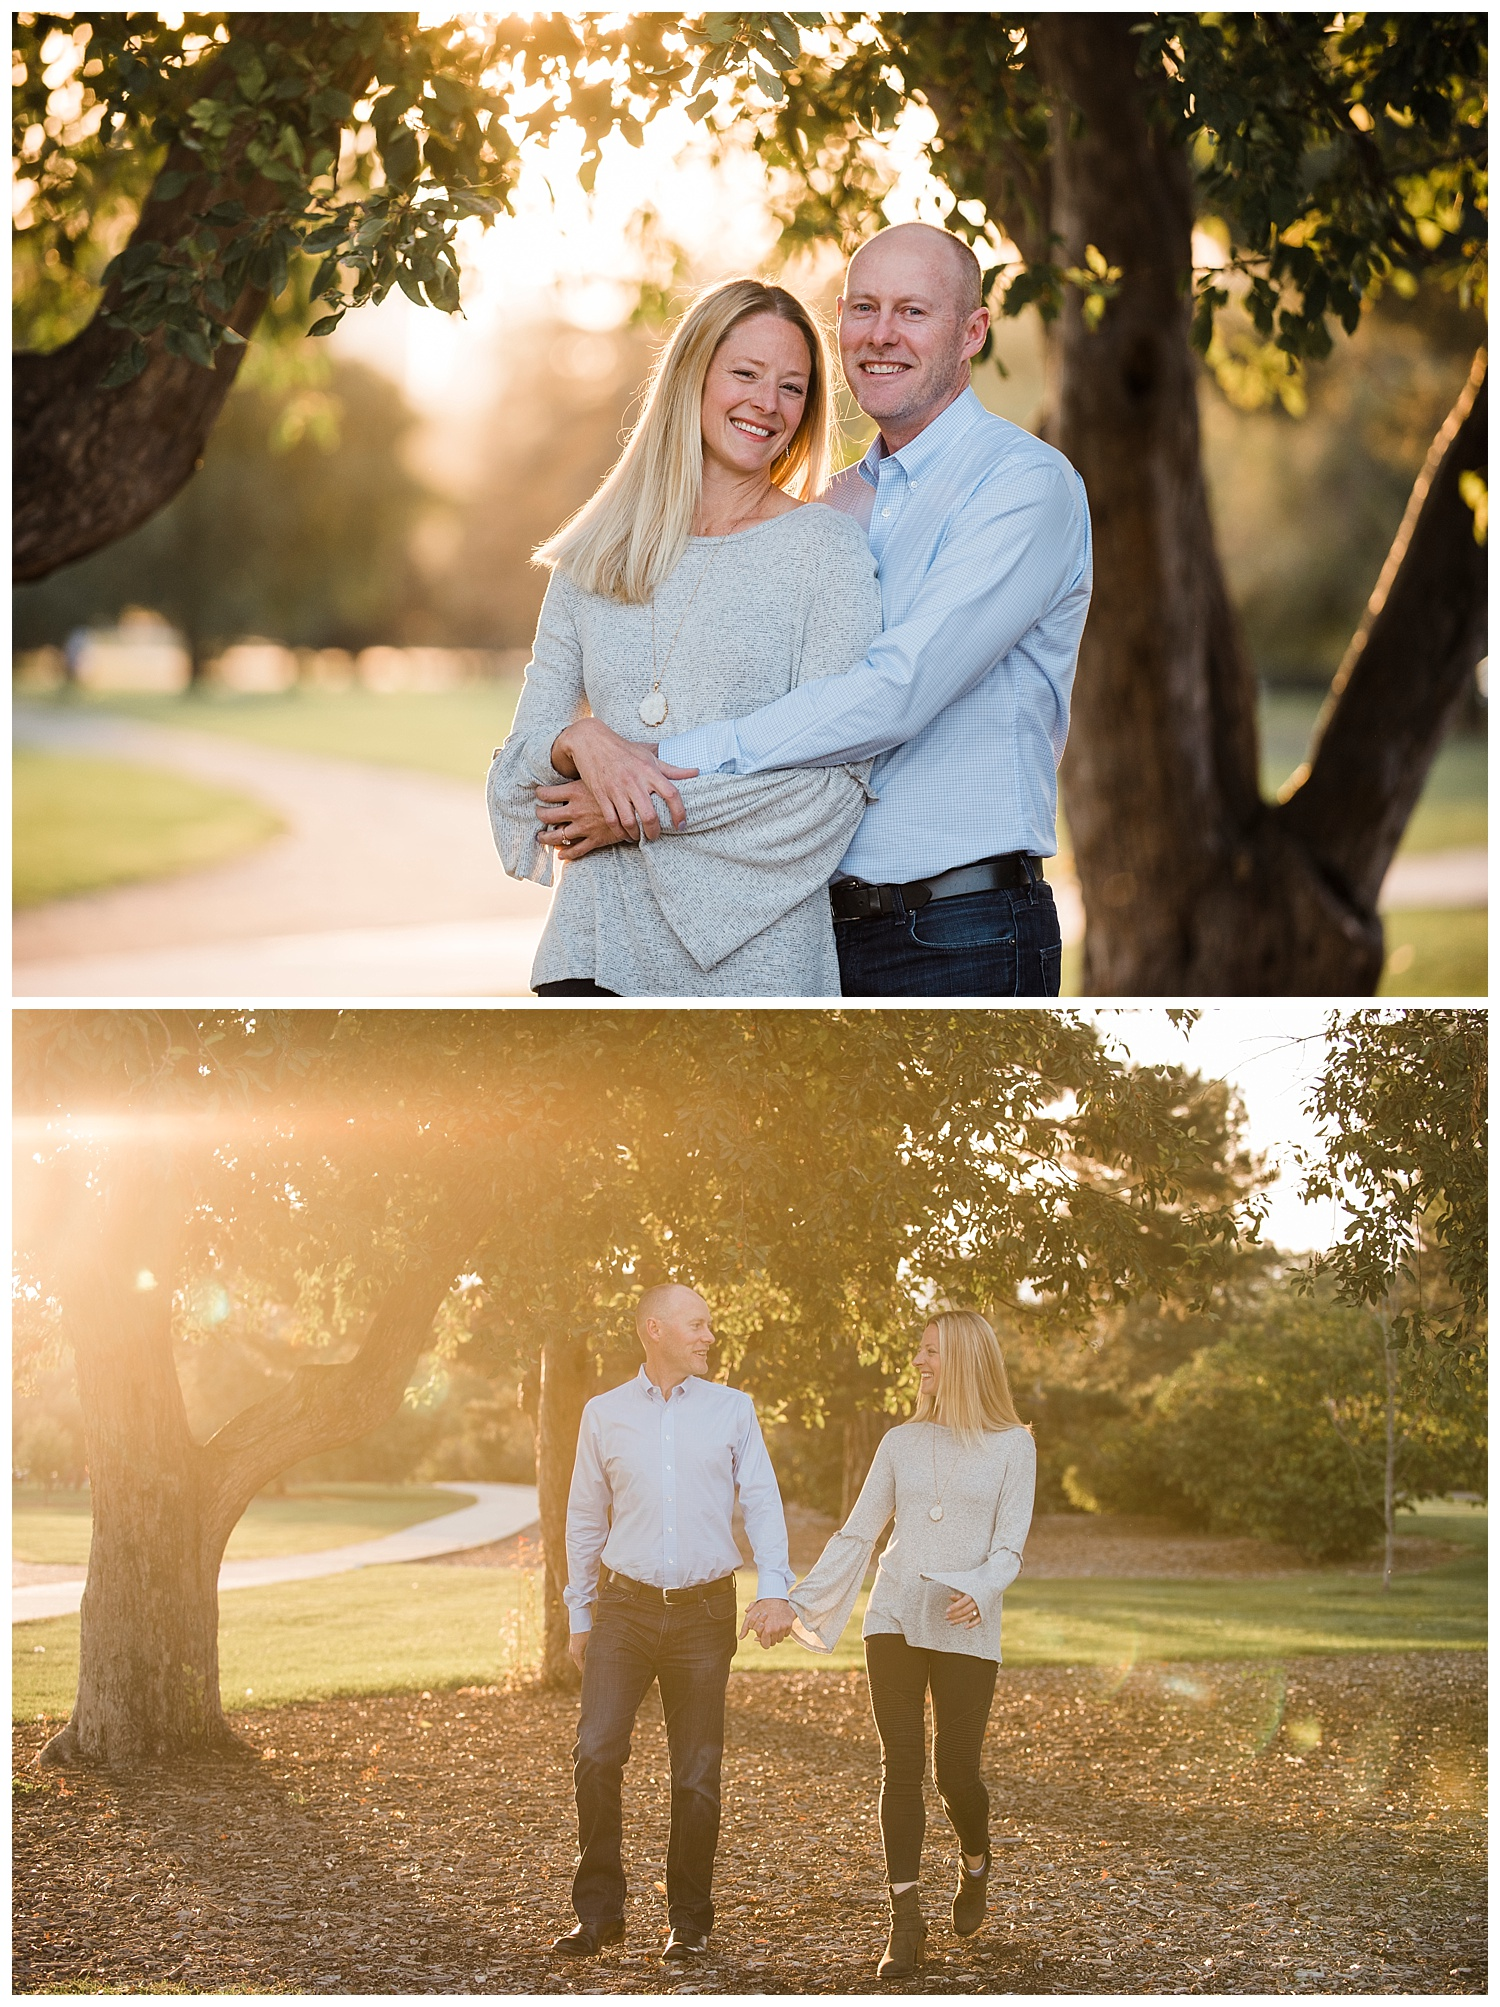 City_Park_Denver_Colorado_Engagement_Session_Apollo_Fields_Weddings_004.jpg